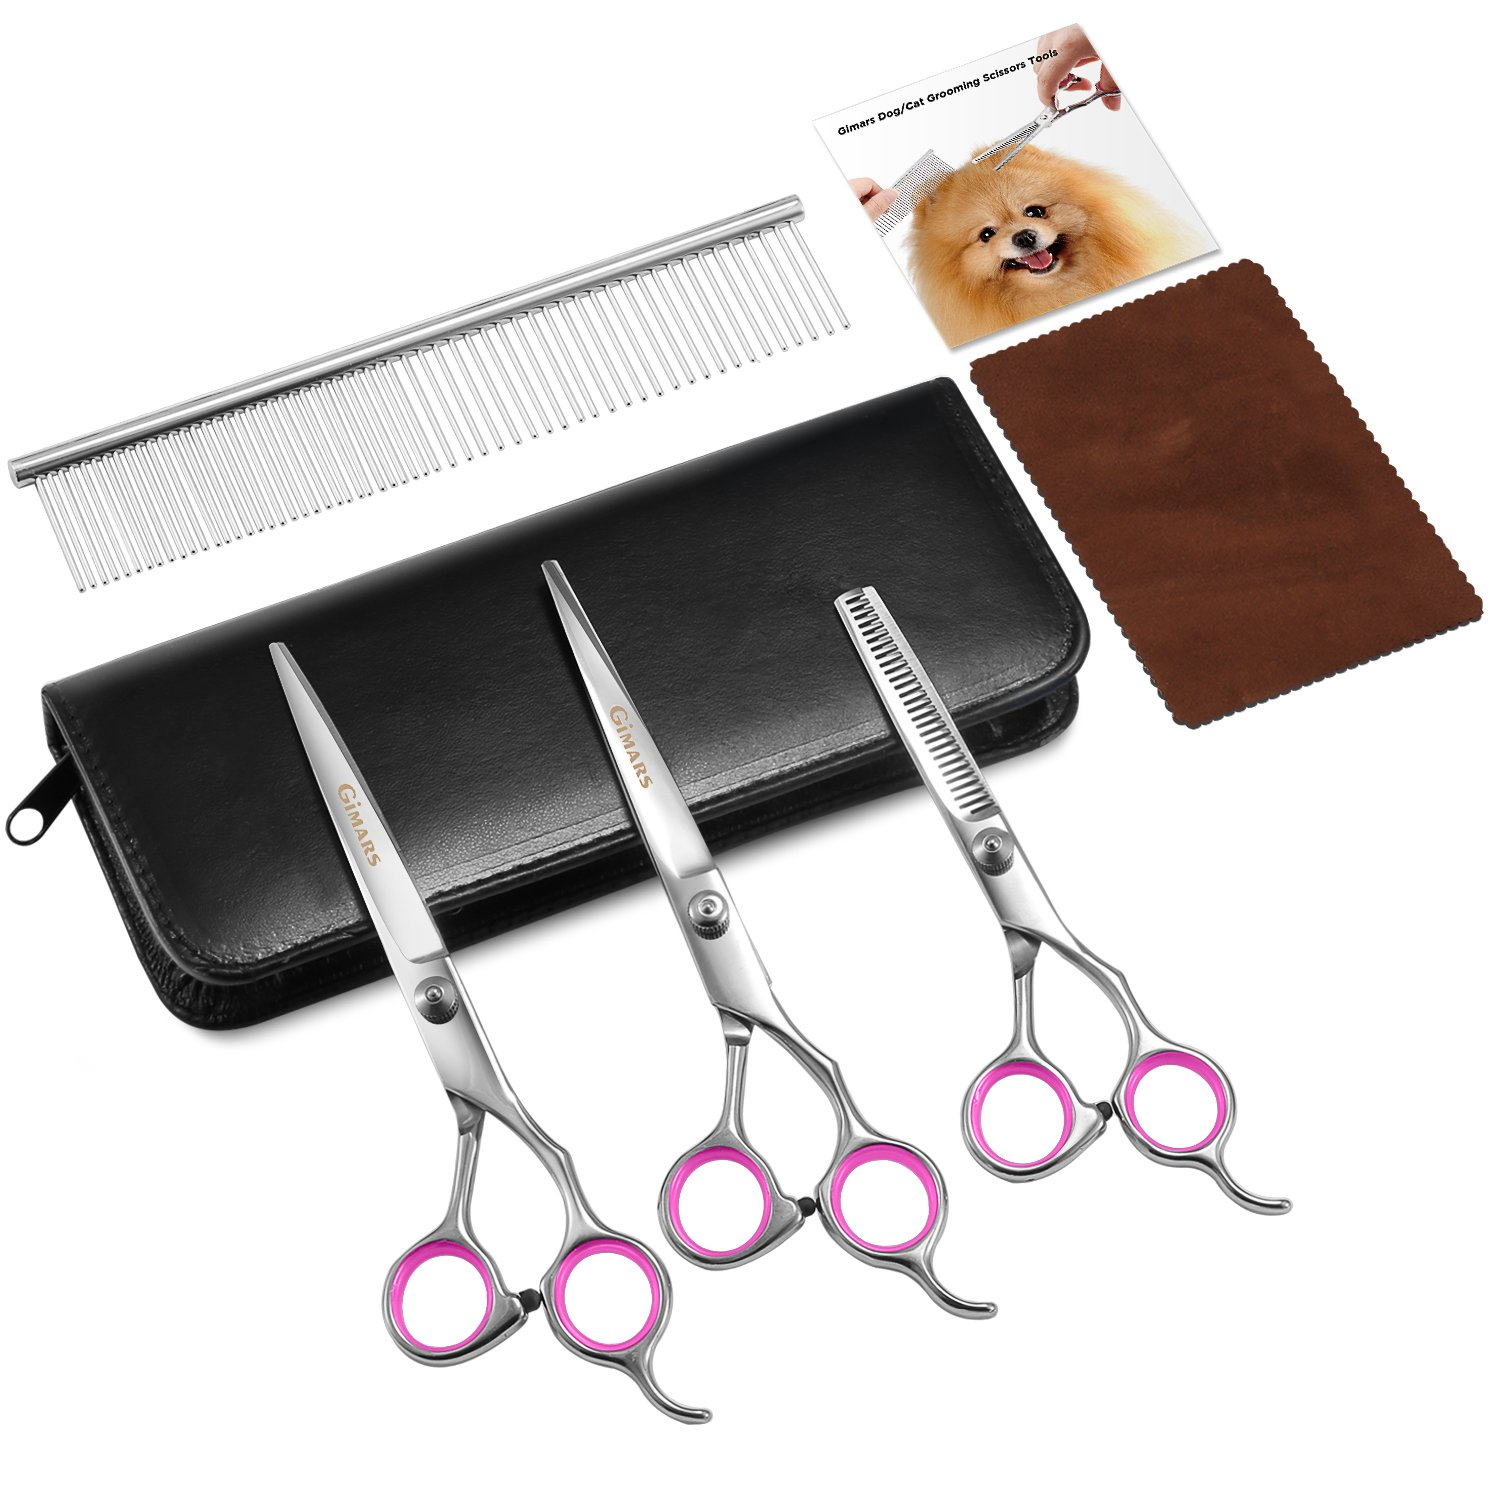 Gimars Heavy Duty Titanium Coated Stainless steel Dog Grooming Scissors Tools - Thinning, Straight, Curved Shears with Combs - Perfect Trimmer Kit for Long & Short Hair, Fur for Cat and More Pets